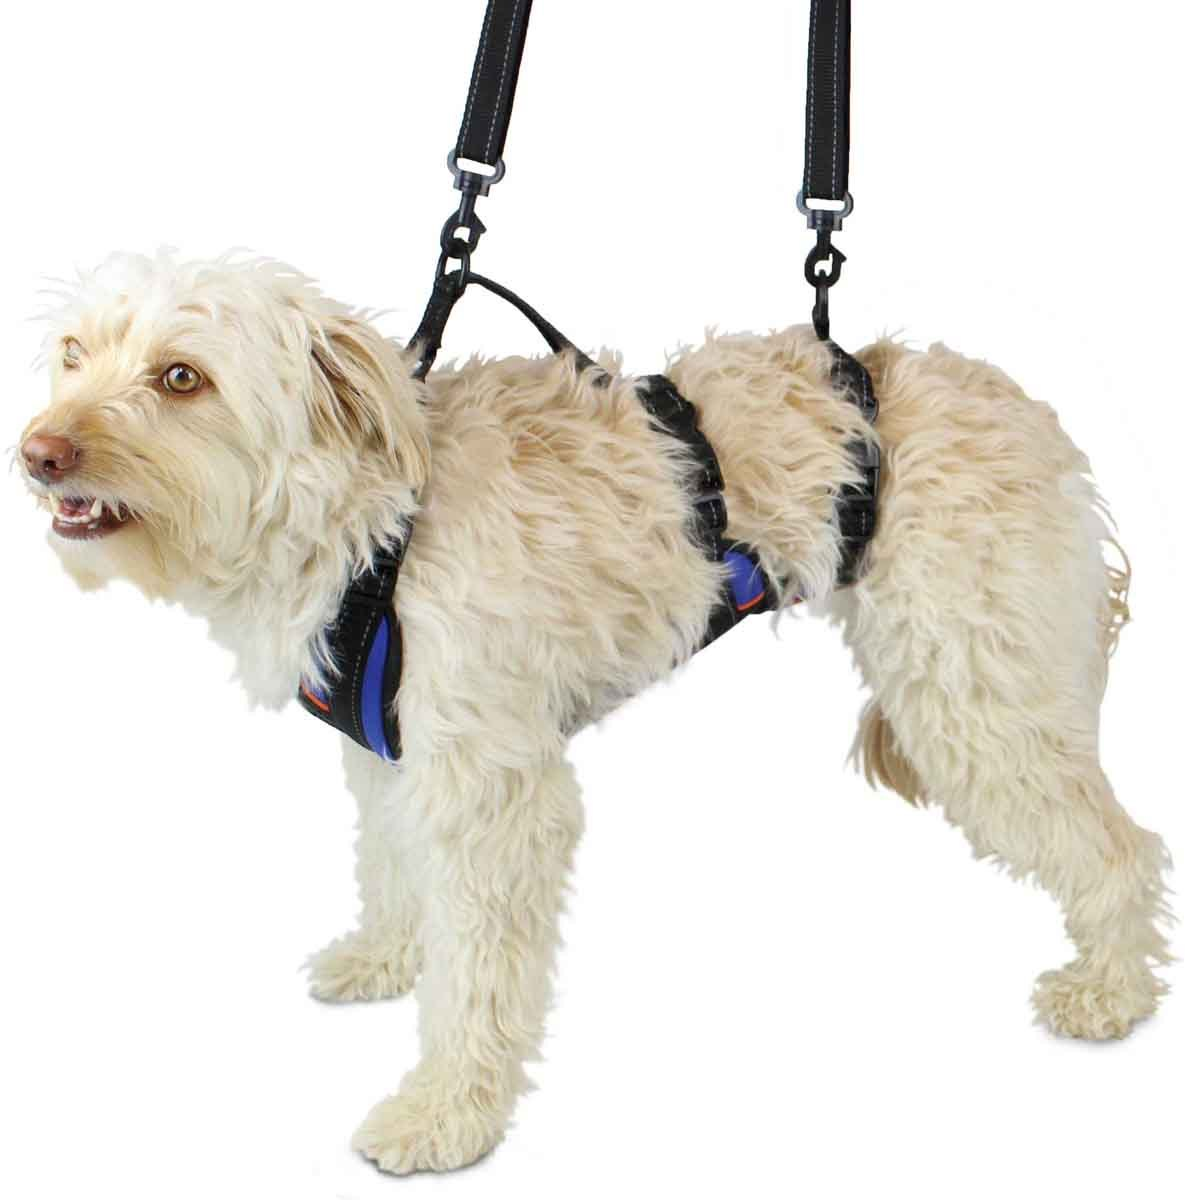 Primary image for Lift-n-Step Dog Harness for Full Body Support | Helps Dogs with Arthritis, Senio